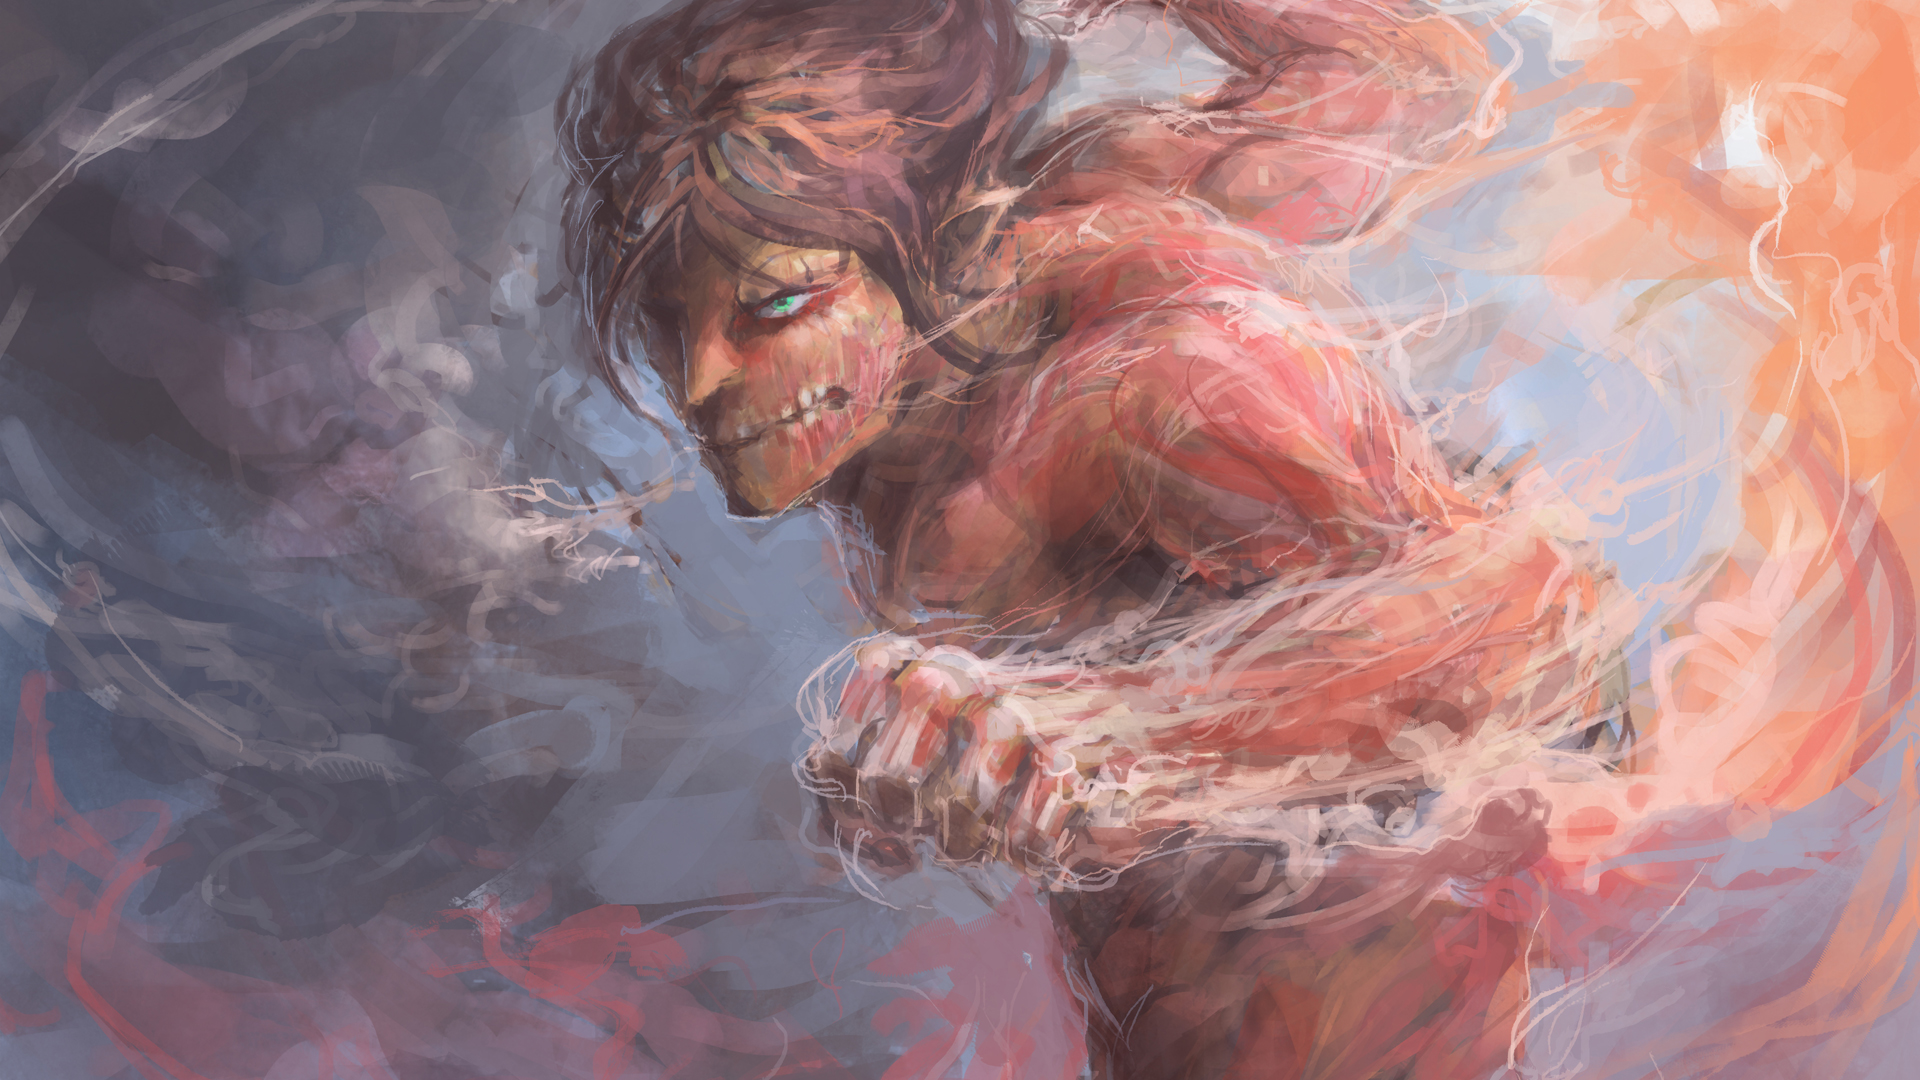 Attack On Titan Full HD Wallpaper and Background Image | 1920x1080 | ID:505641